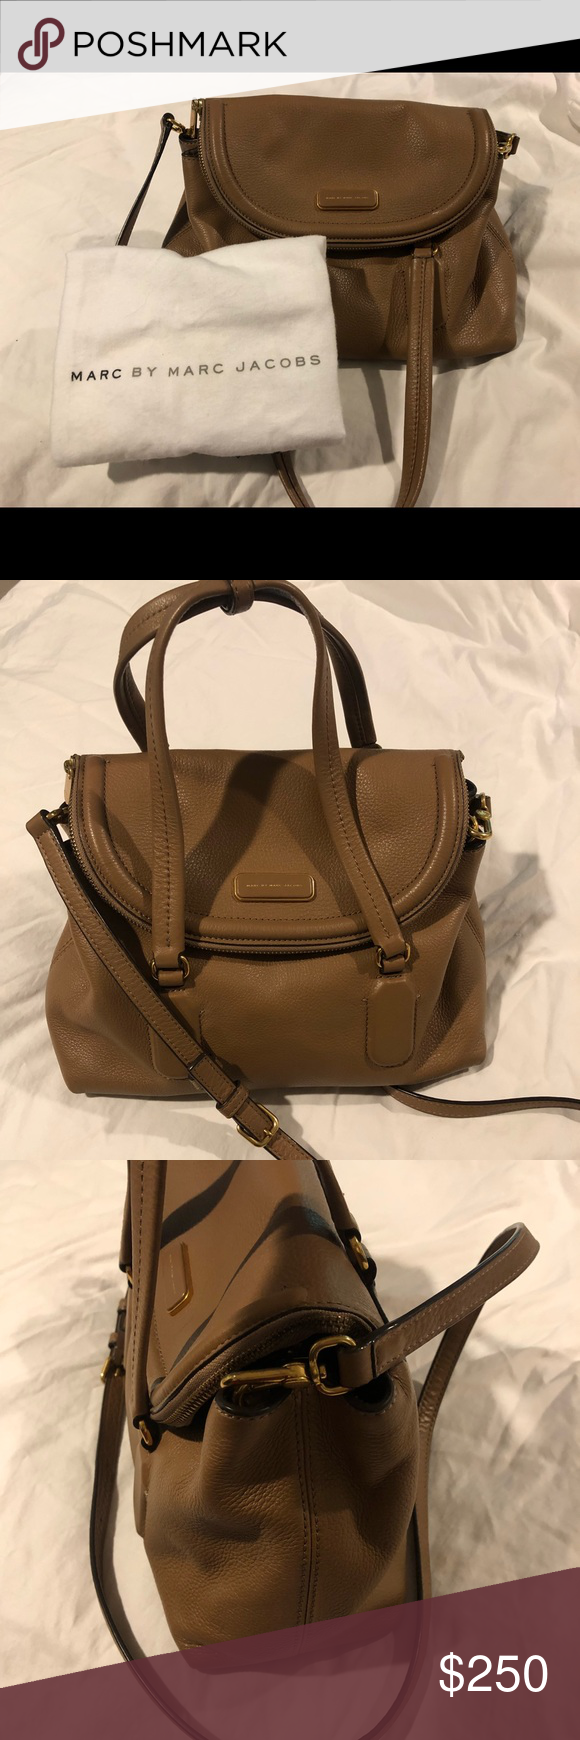 a7782e14f7 Marc by Marc Jacobs Silicone Valley Small Satchel Top-handle Light  Chocolate leather bag featuring zippered flap and tonal feet 14.6 x 13.9 x  5.4 inches ...